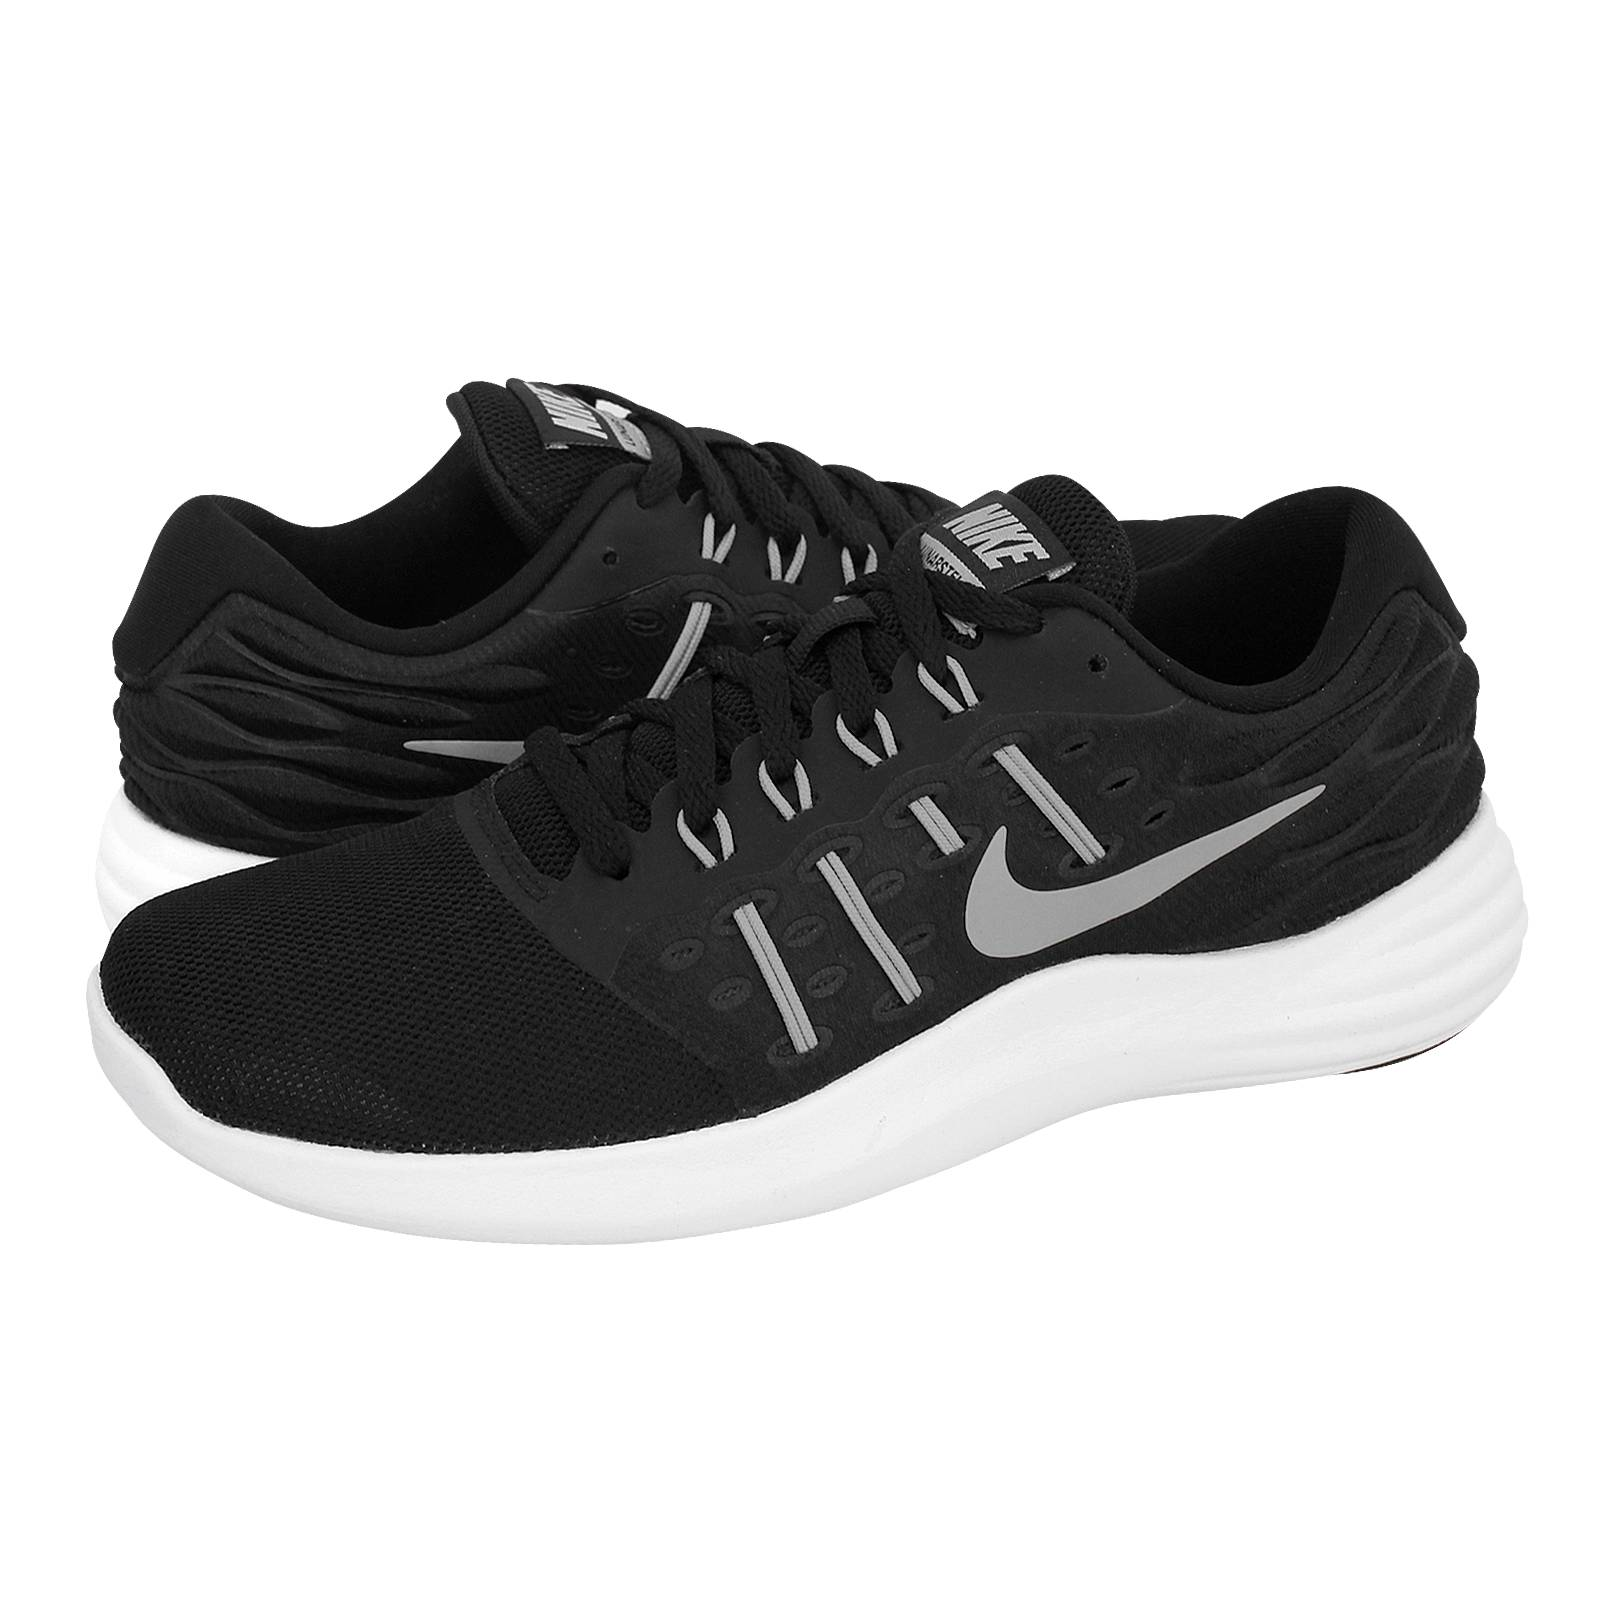 8618bd9ae25 Lunarstelos - Nike Women s athletic shoes made of fabric and synthetic -  Gianna Kazakou Online